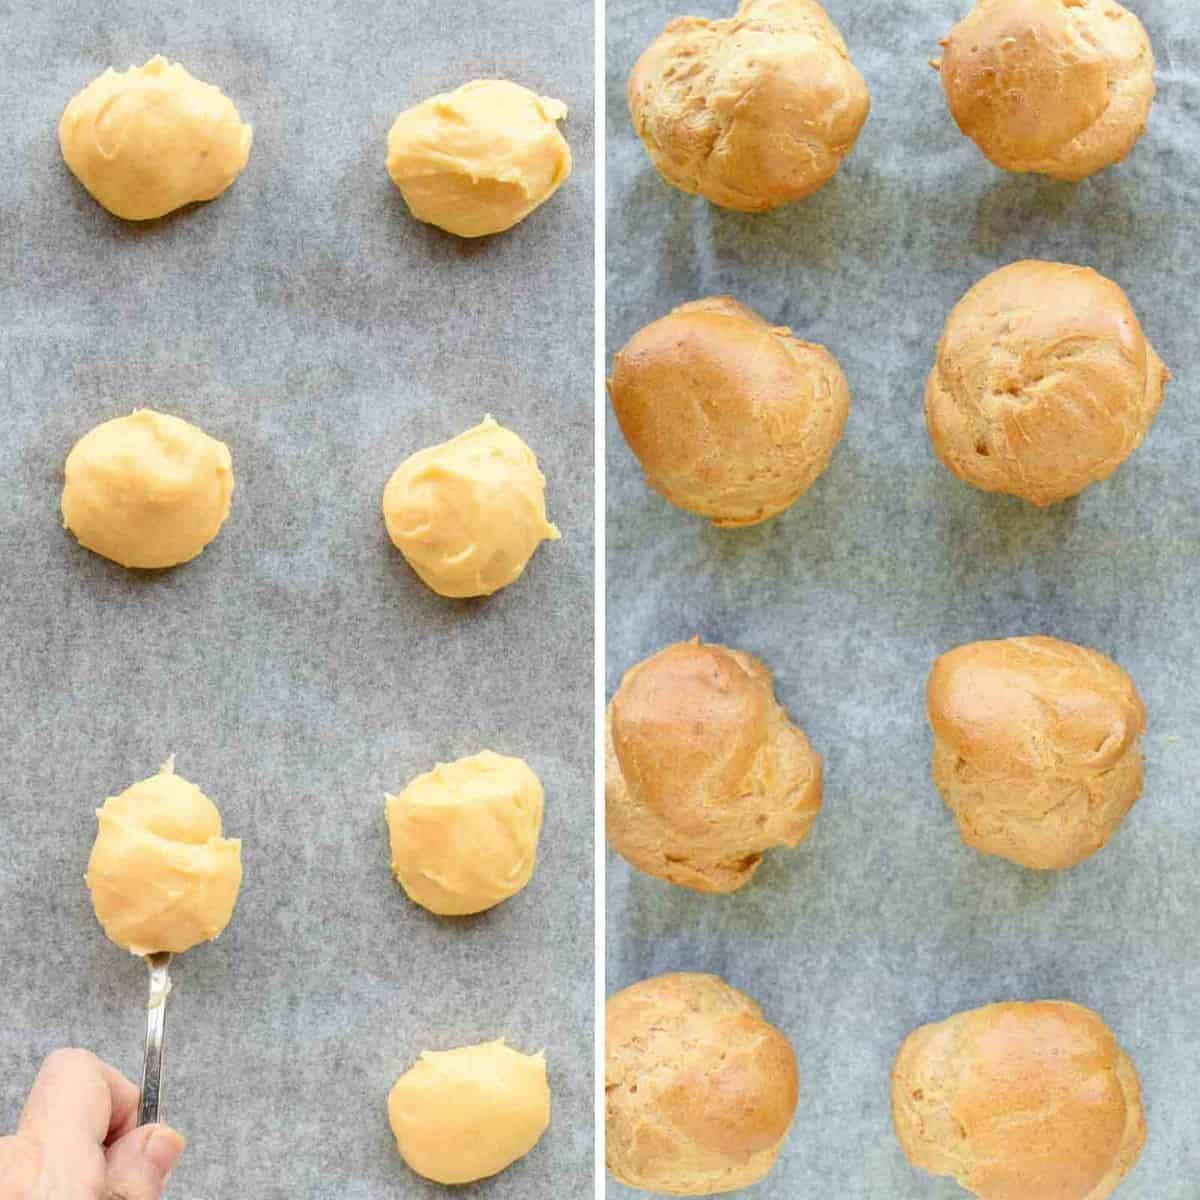 two images -one of unbaked choux pastry batter, second is baked choux pastry puffs